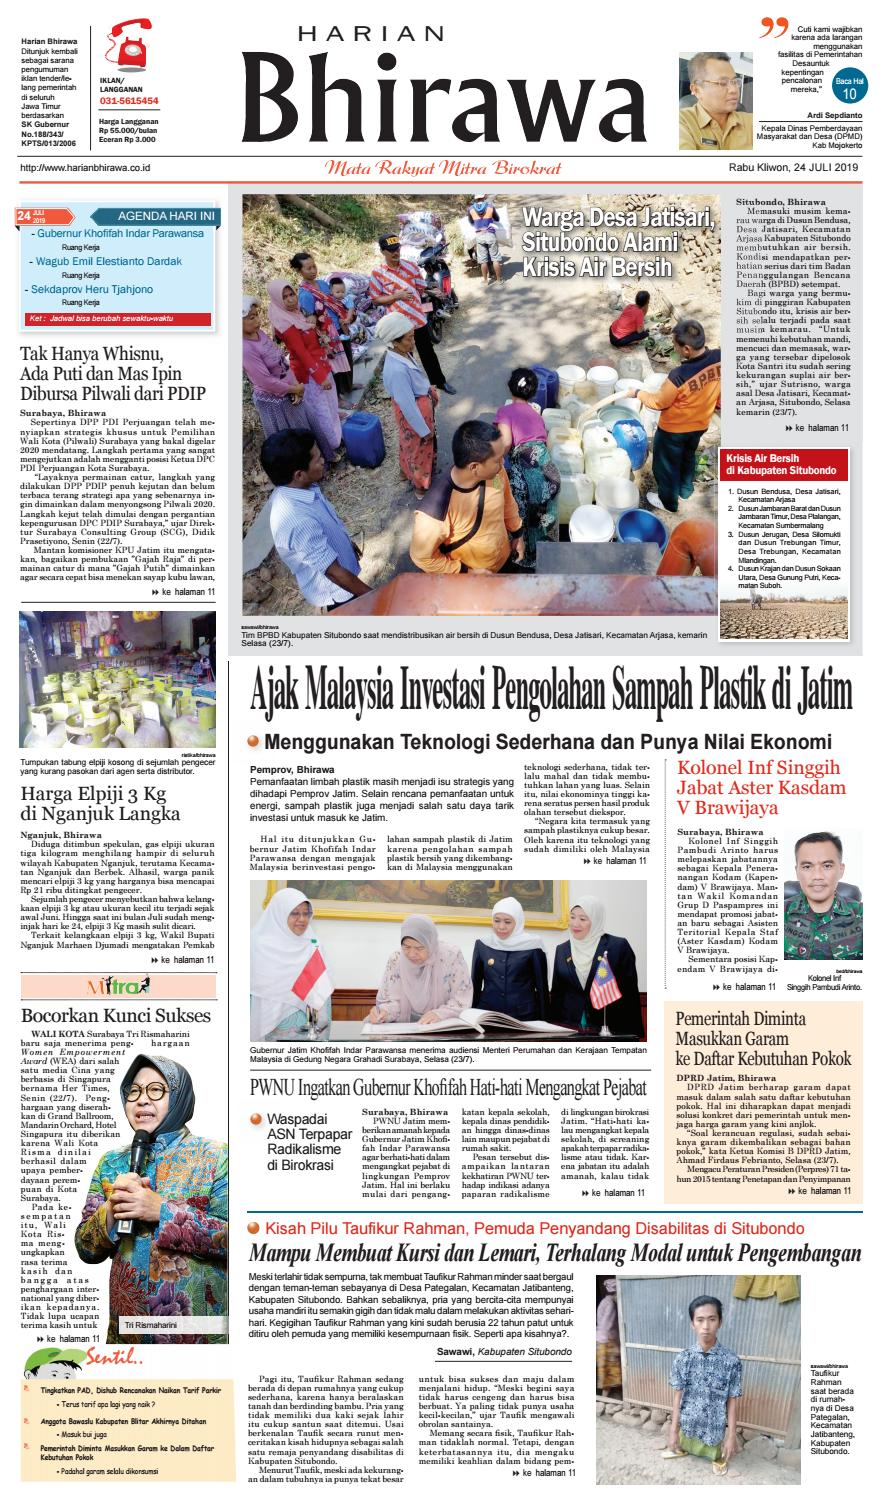 Binder24jul19 By Harian Bhirawa Issuu